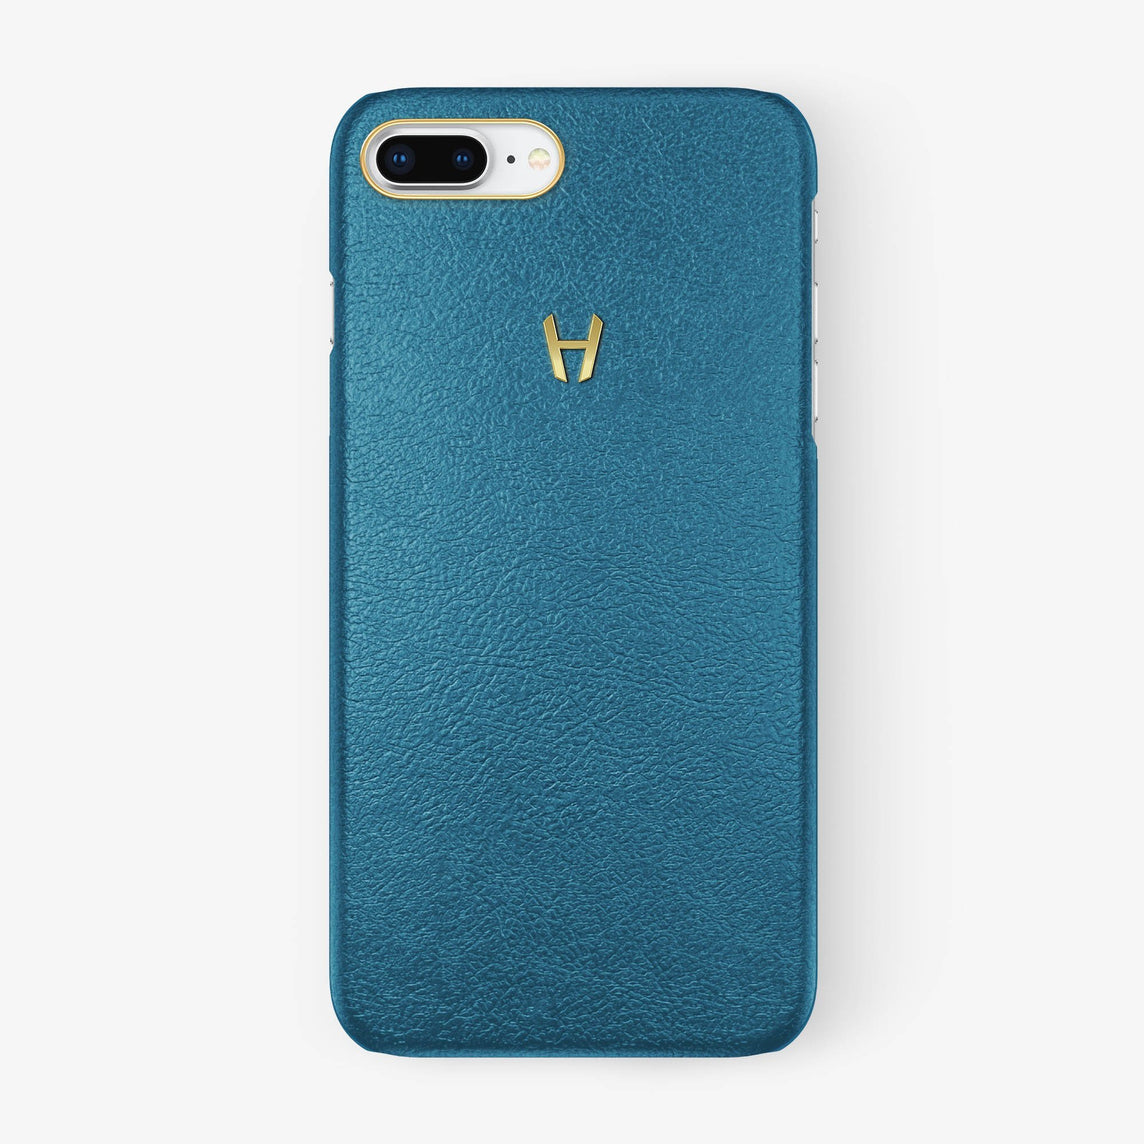 Calfskin Case iPhone 7/8 Plus | Teal - Yellow Gold without-personalization